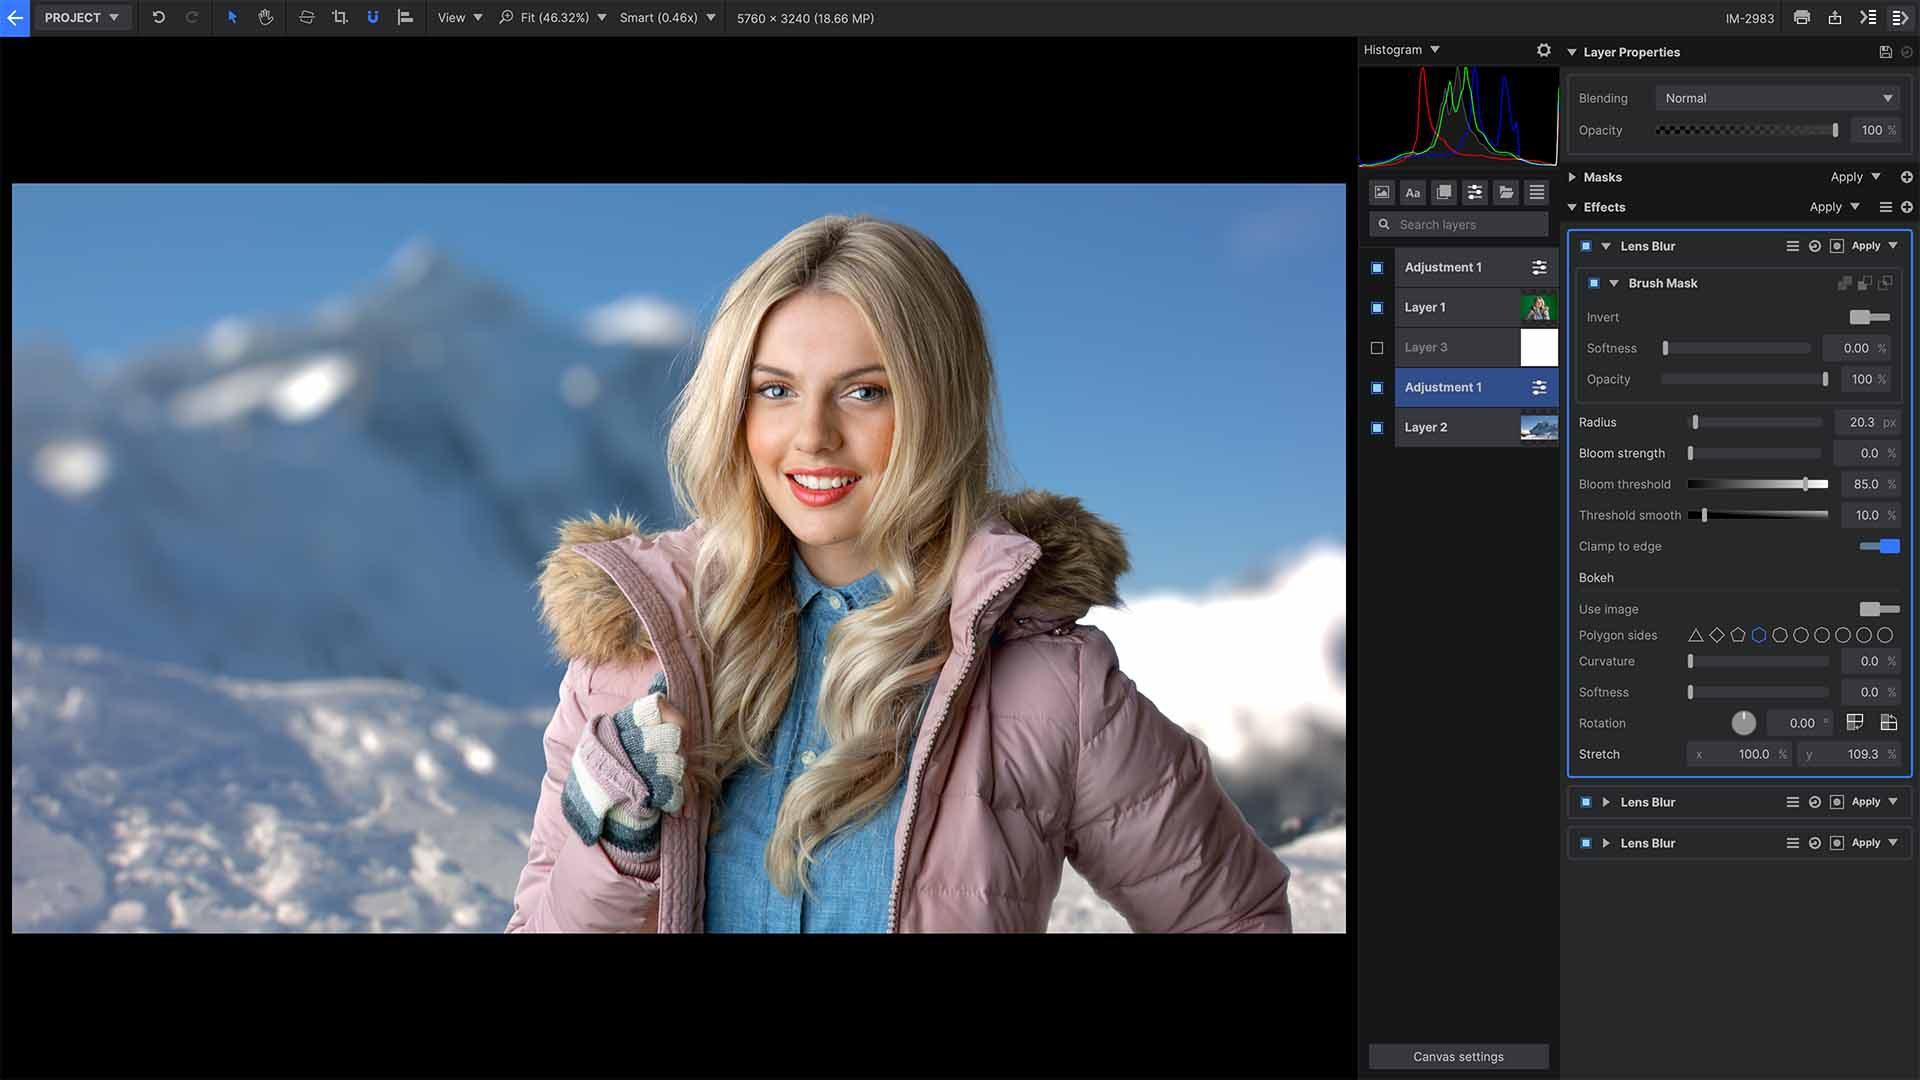 Lens Blur effect in Imerge Pro 2021 interface